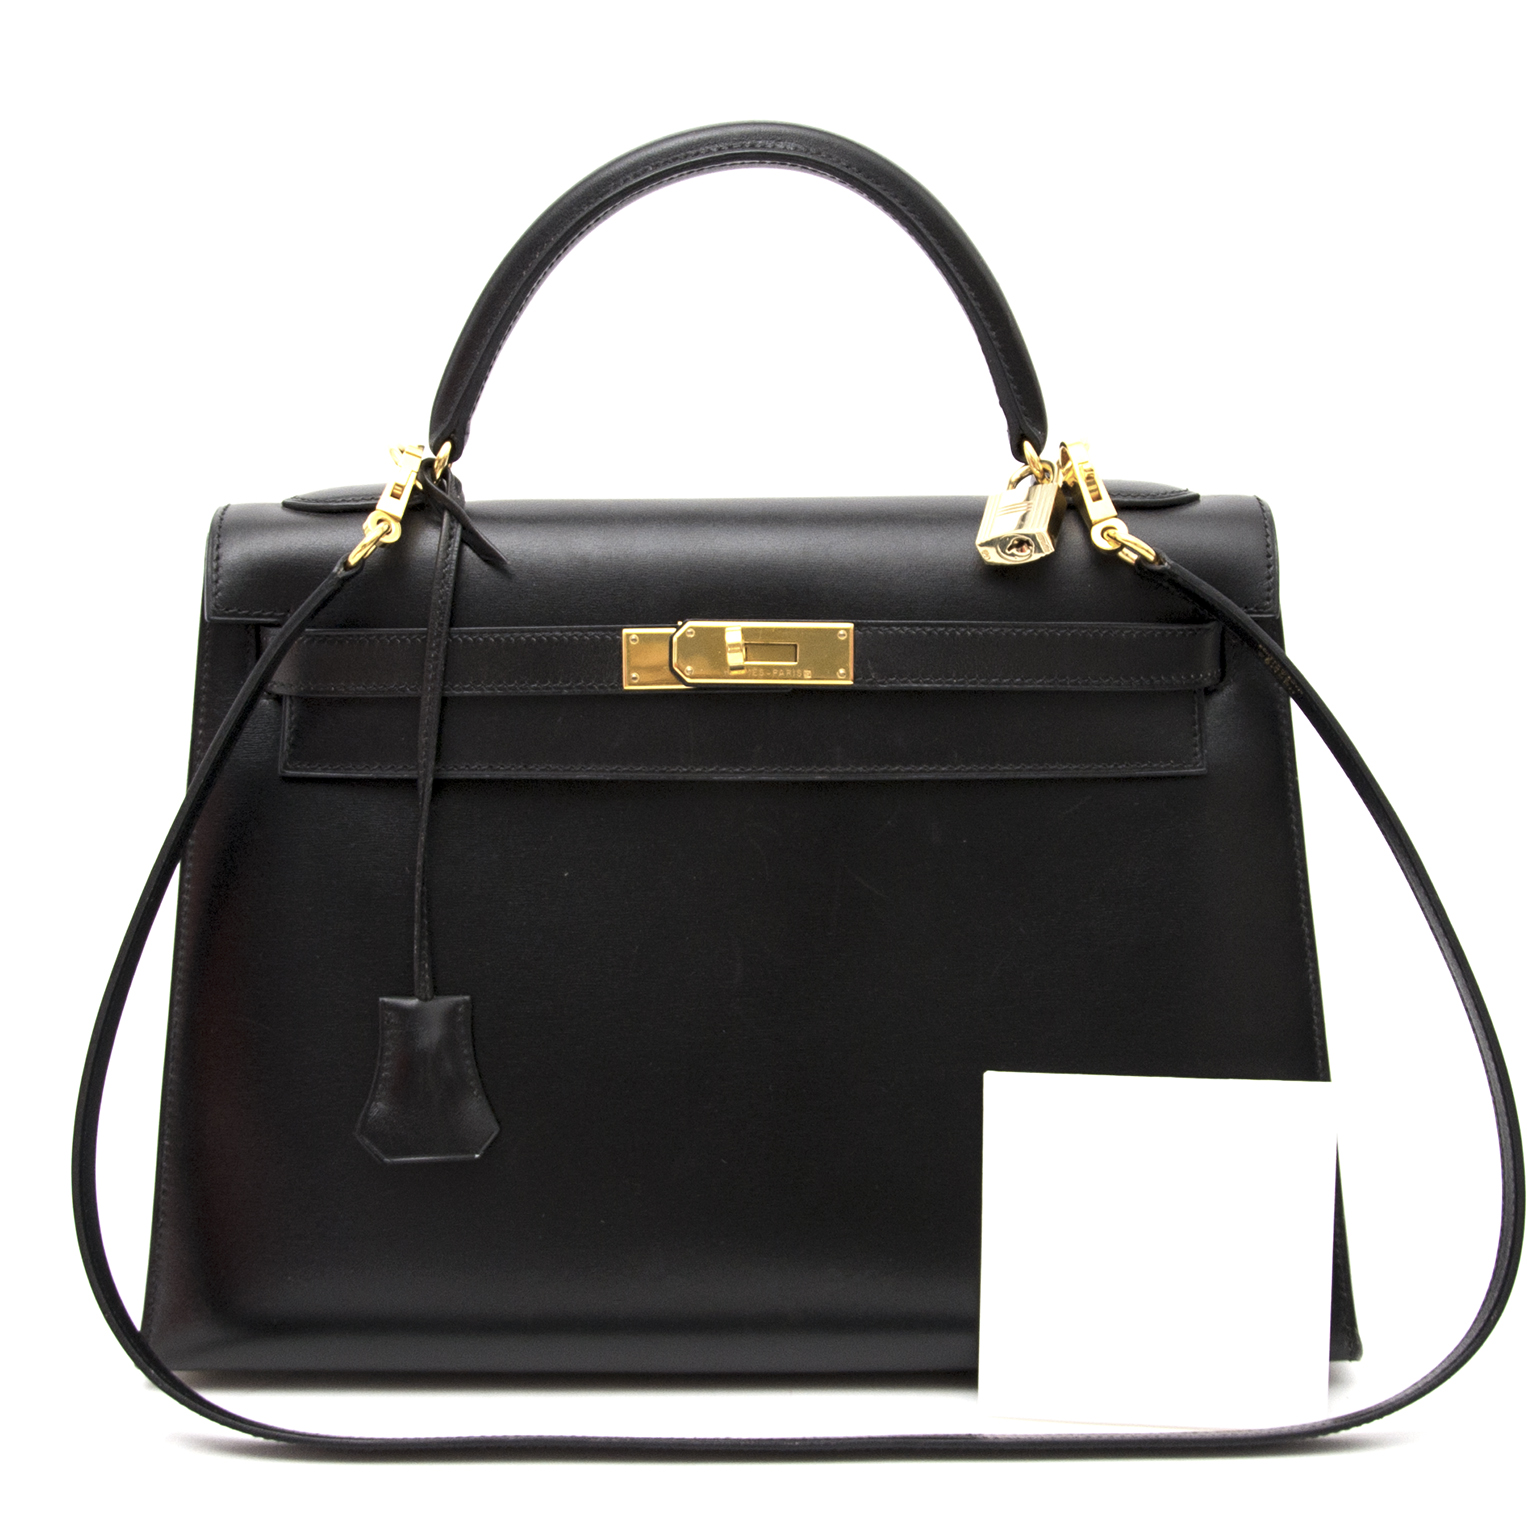 a64bc04142 comme neuf sac a main Hermès Kelly 32 Black Boxcalf pour le meilleur prix  shop safe online at the best price Hermès Kelly 32 Black Boxcalf